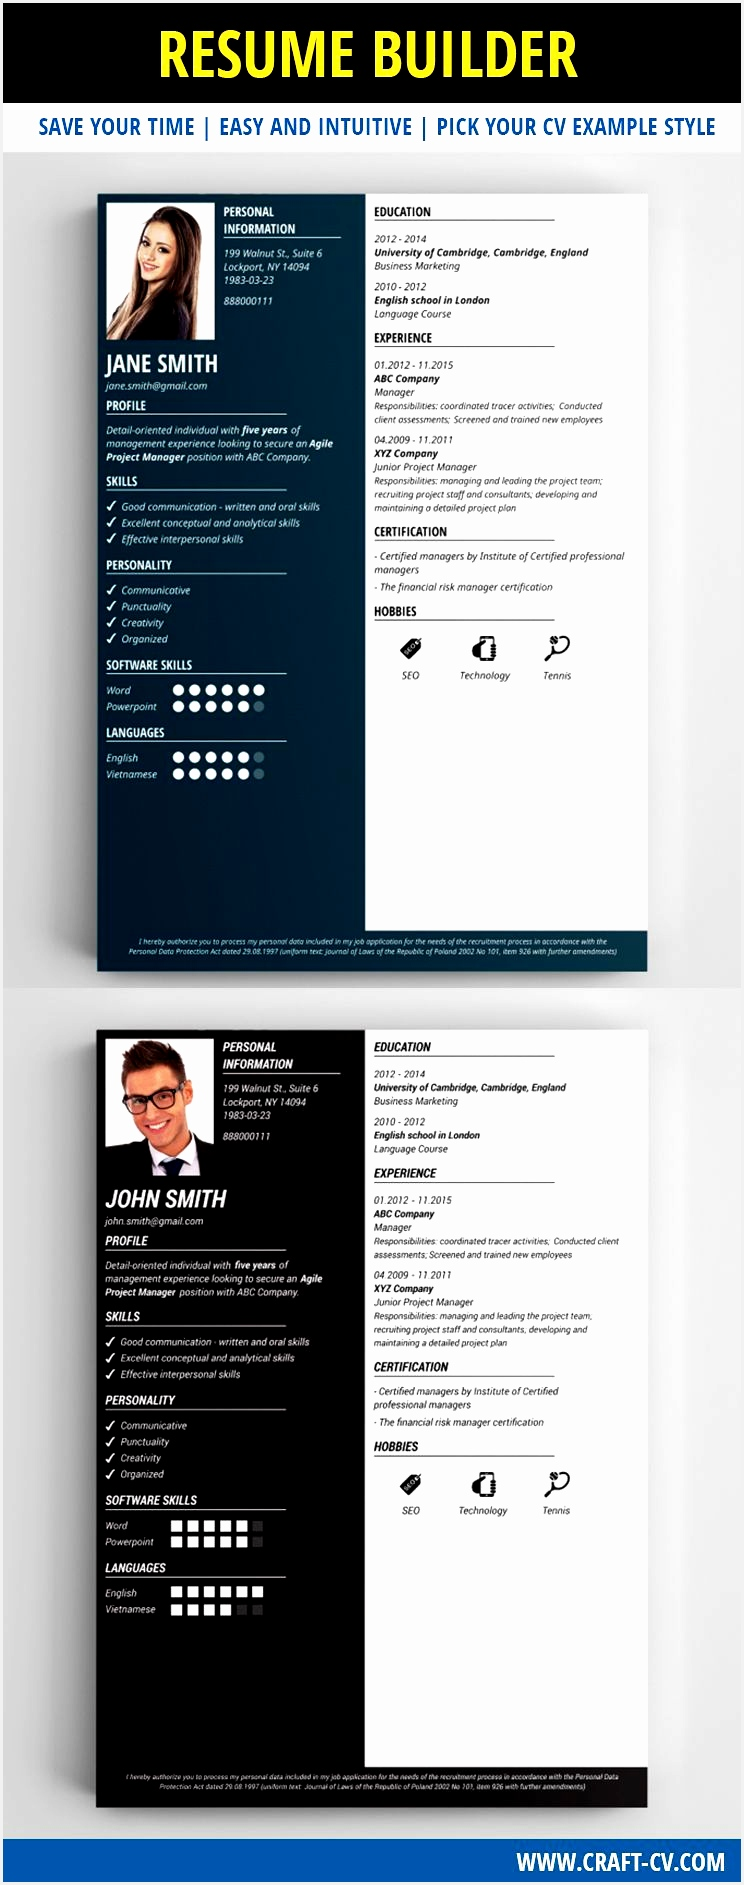 Resume Maker These Resume Templates will surely help you find a job The best Resume Maker with effective and original resume templates1885744